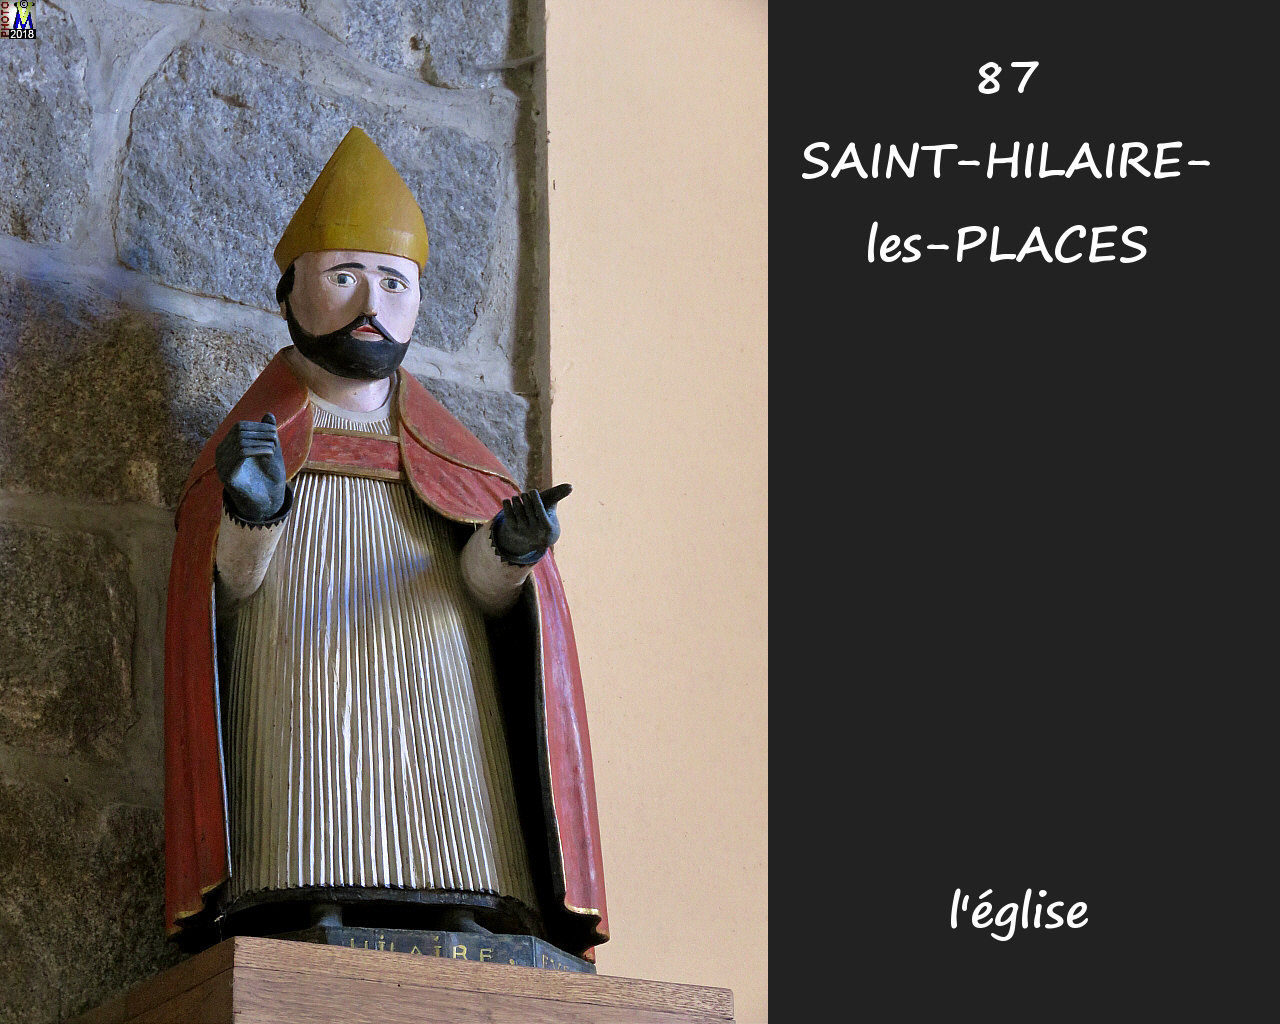 87StHILAIRE-PLACES_eglise_1140.jpg